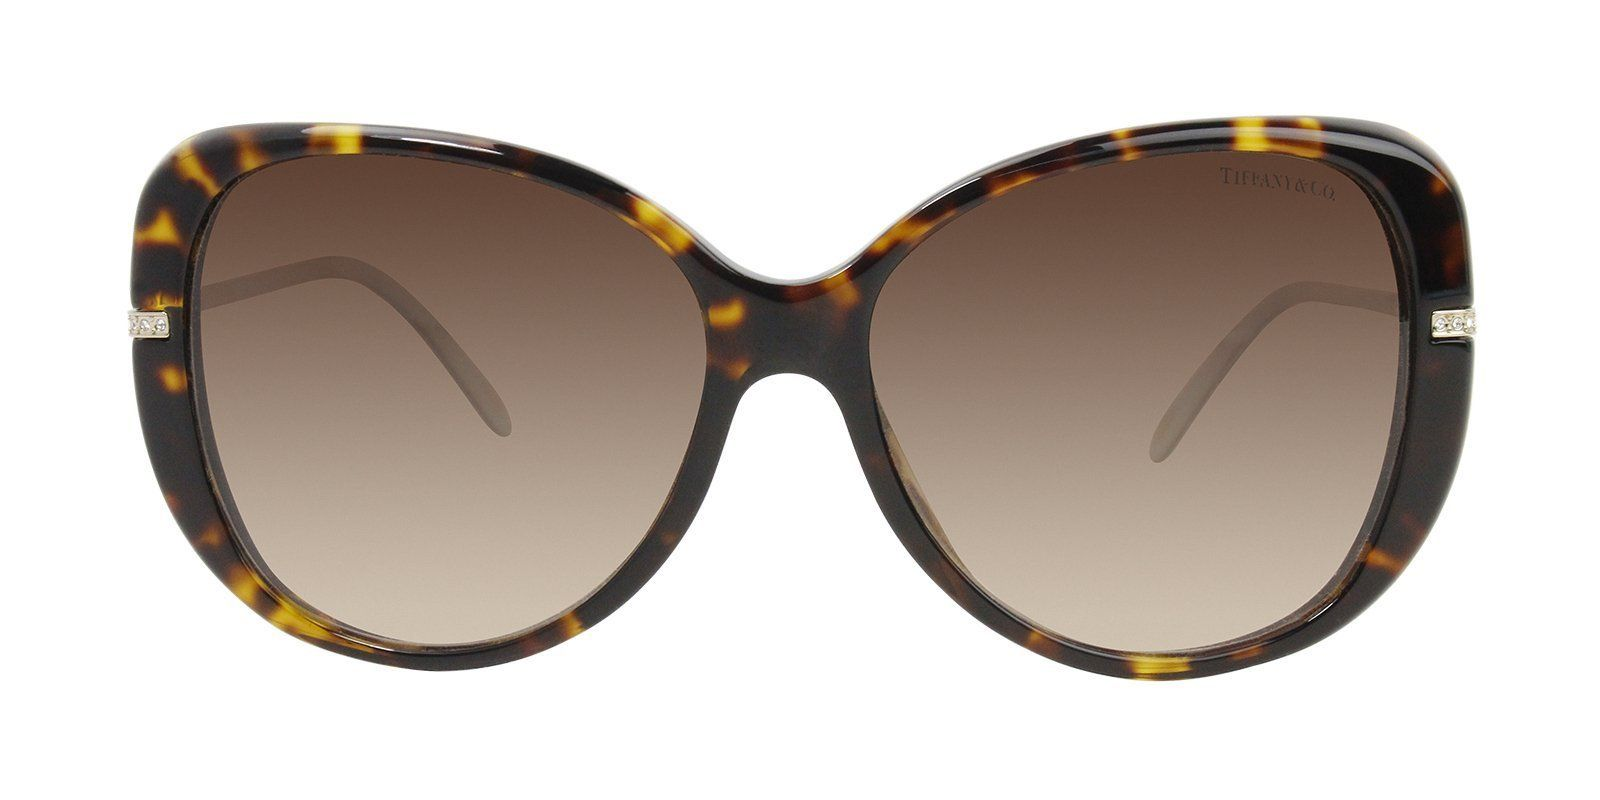 3ce86e8718a Tiffany - TF4126B Tortoise - Brown sunglasses